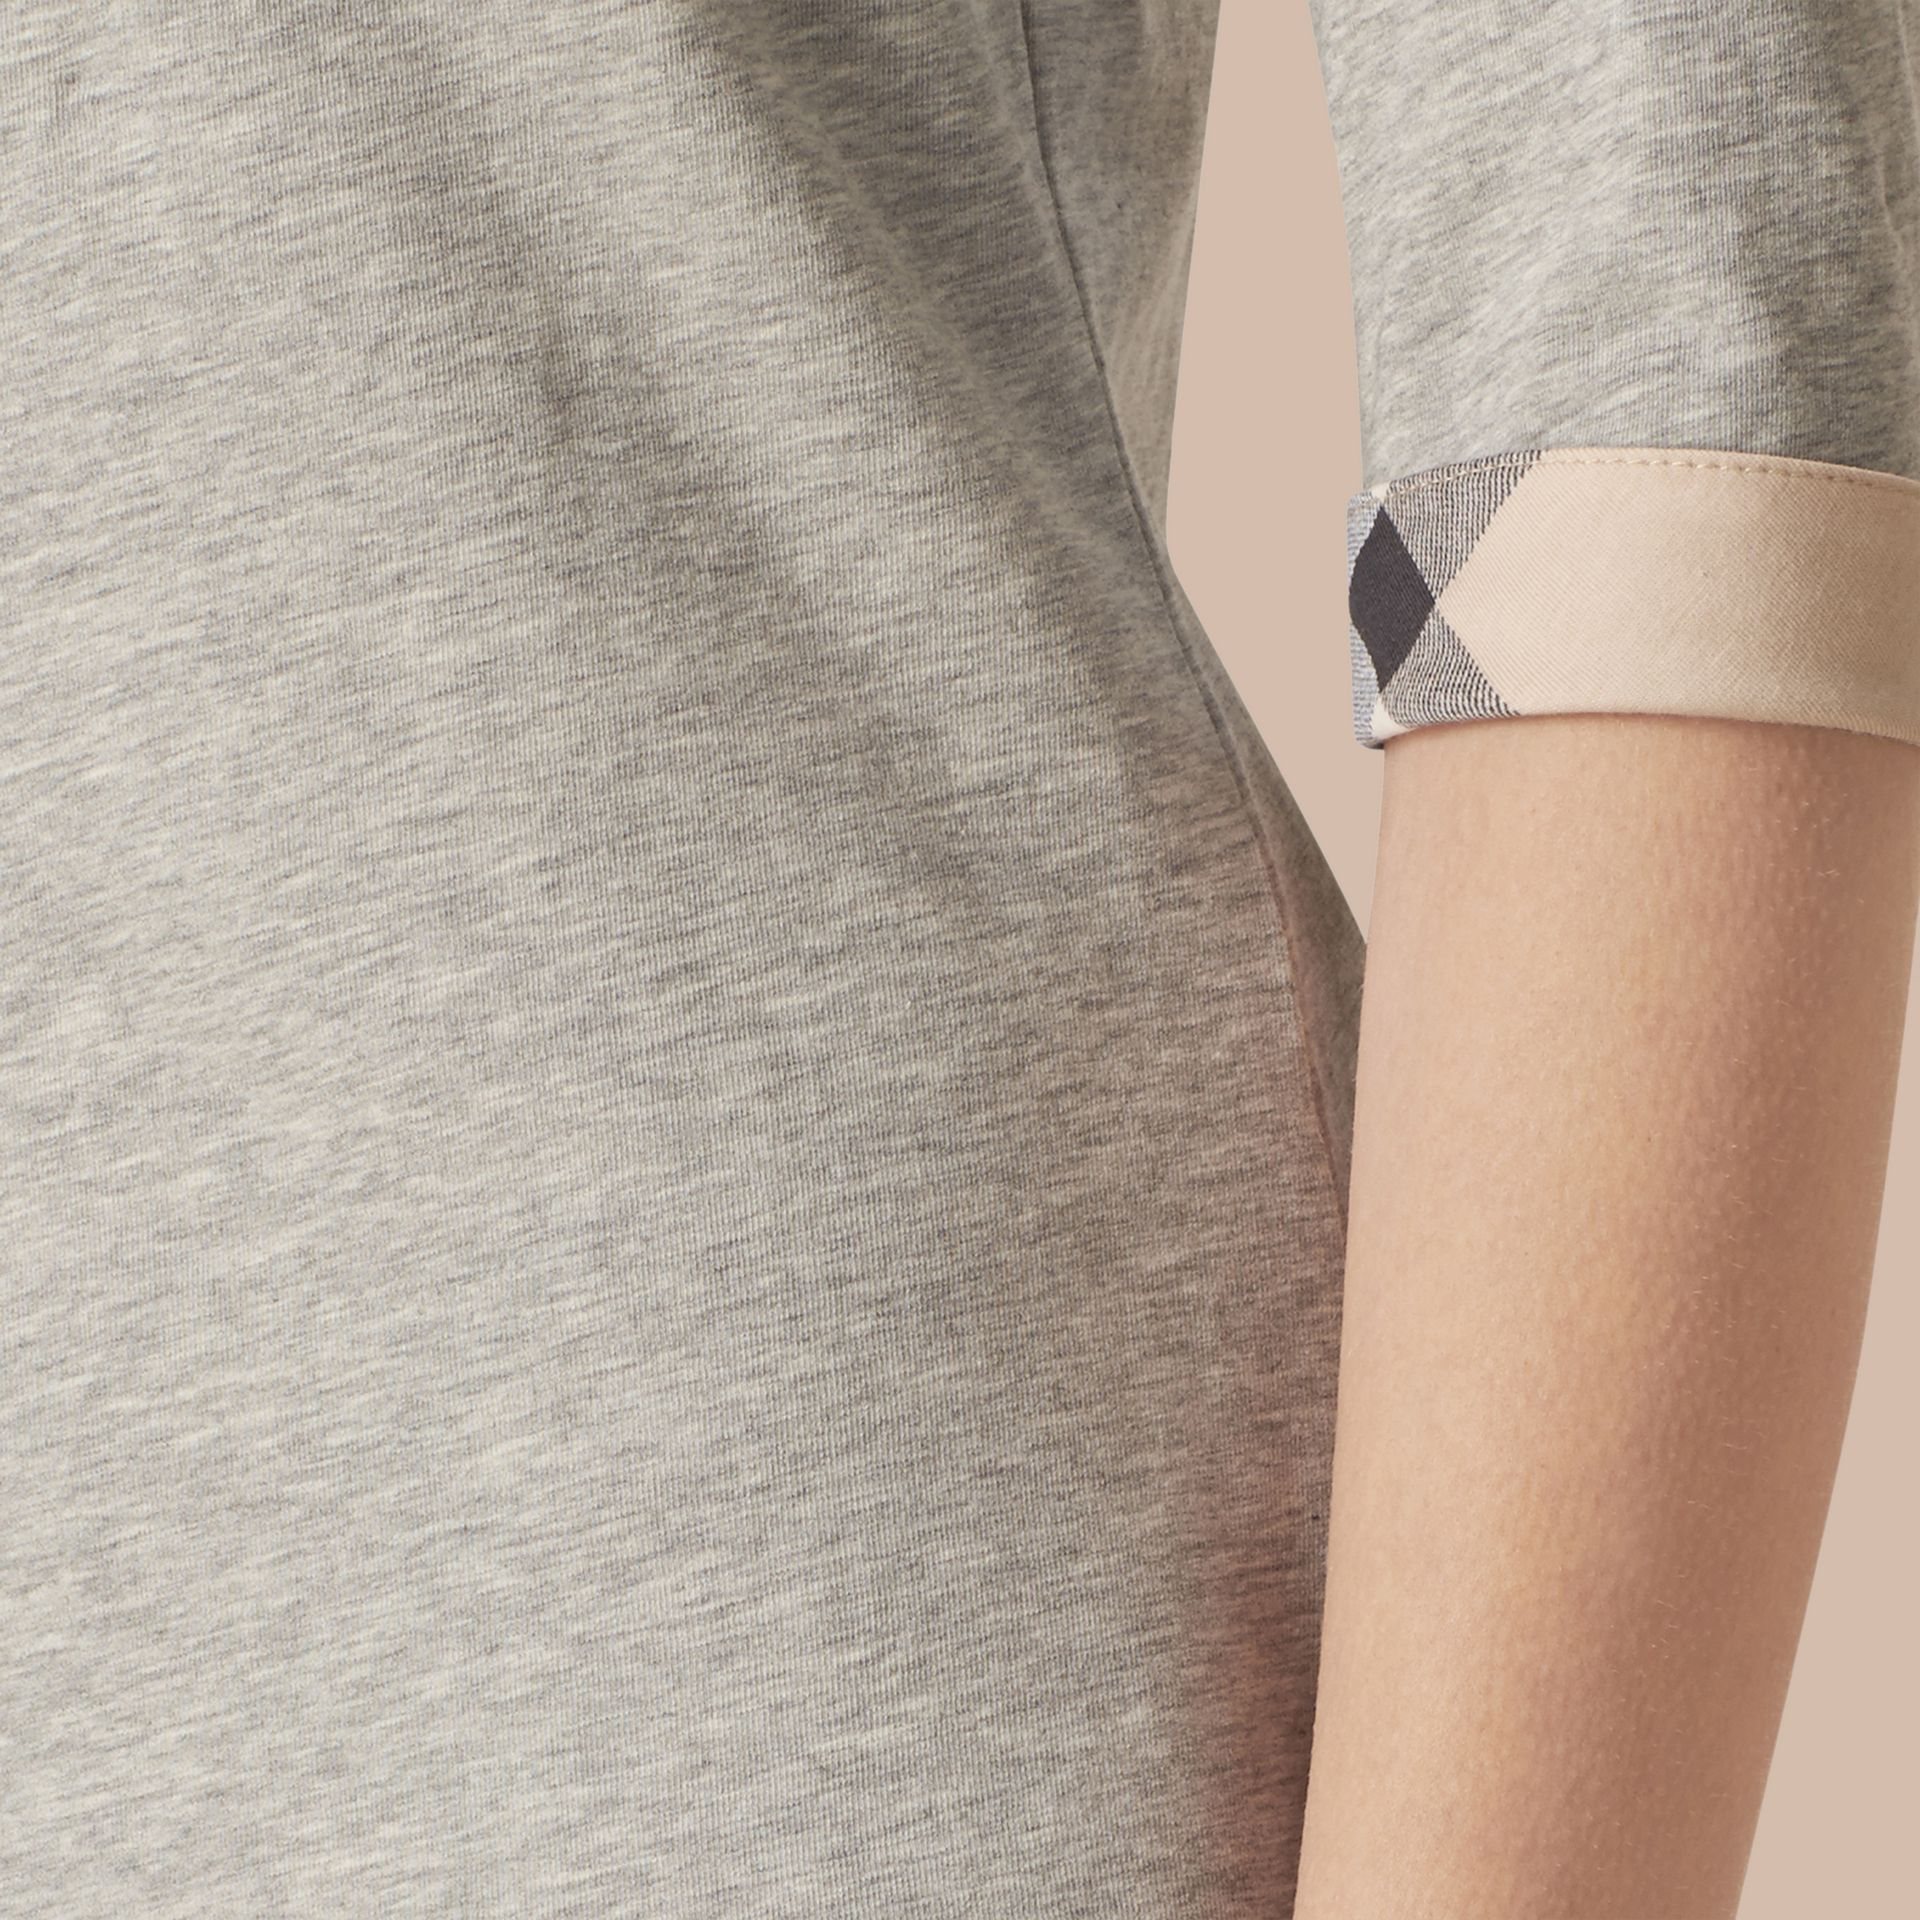 Check Cuff Stretch-Cotton Top in Pale Grey Melange - Women | Burberry - gallery image 2